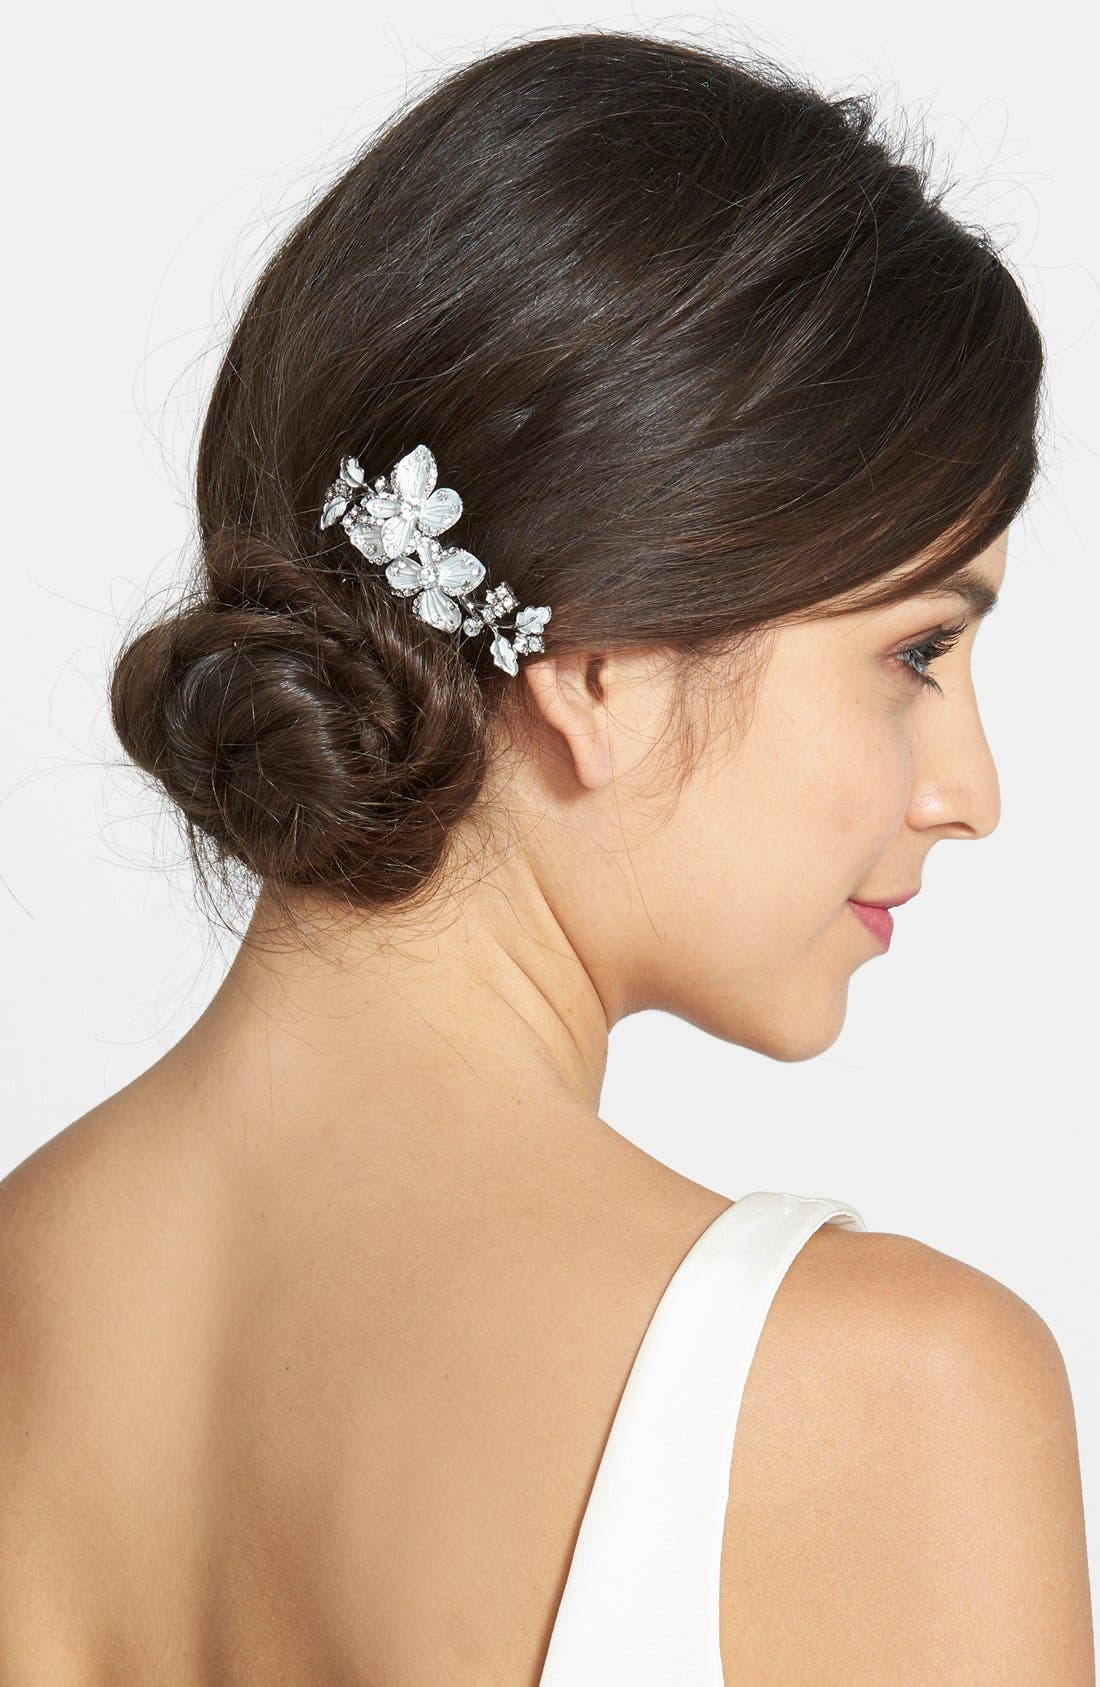 Updos with headbands for wedding